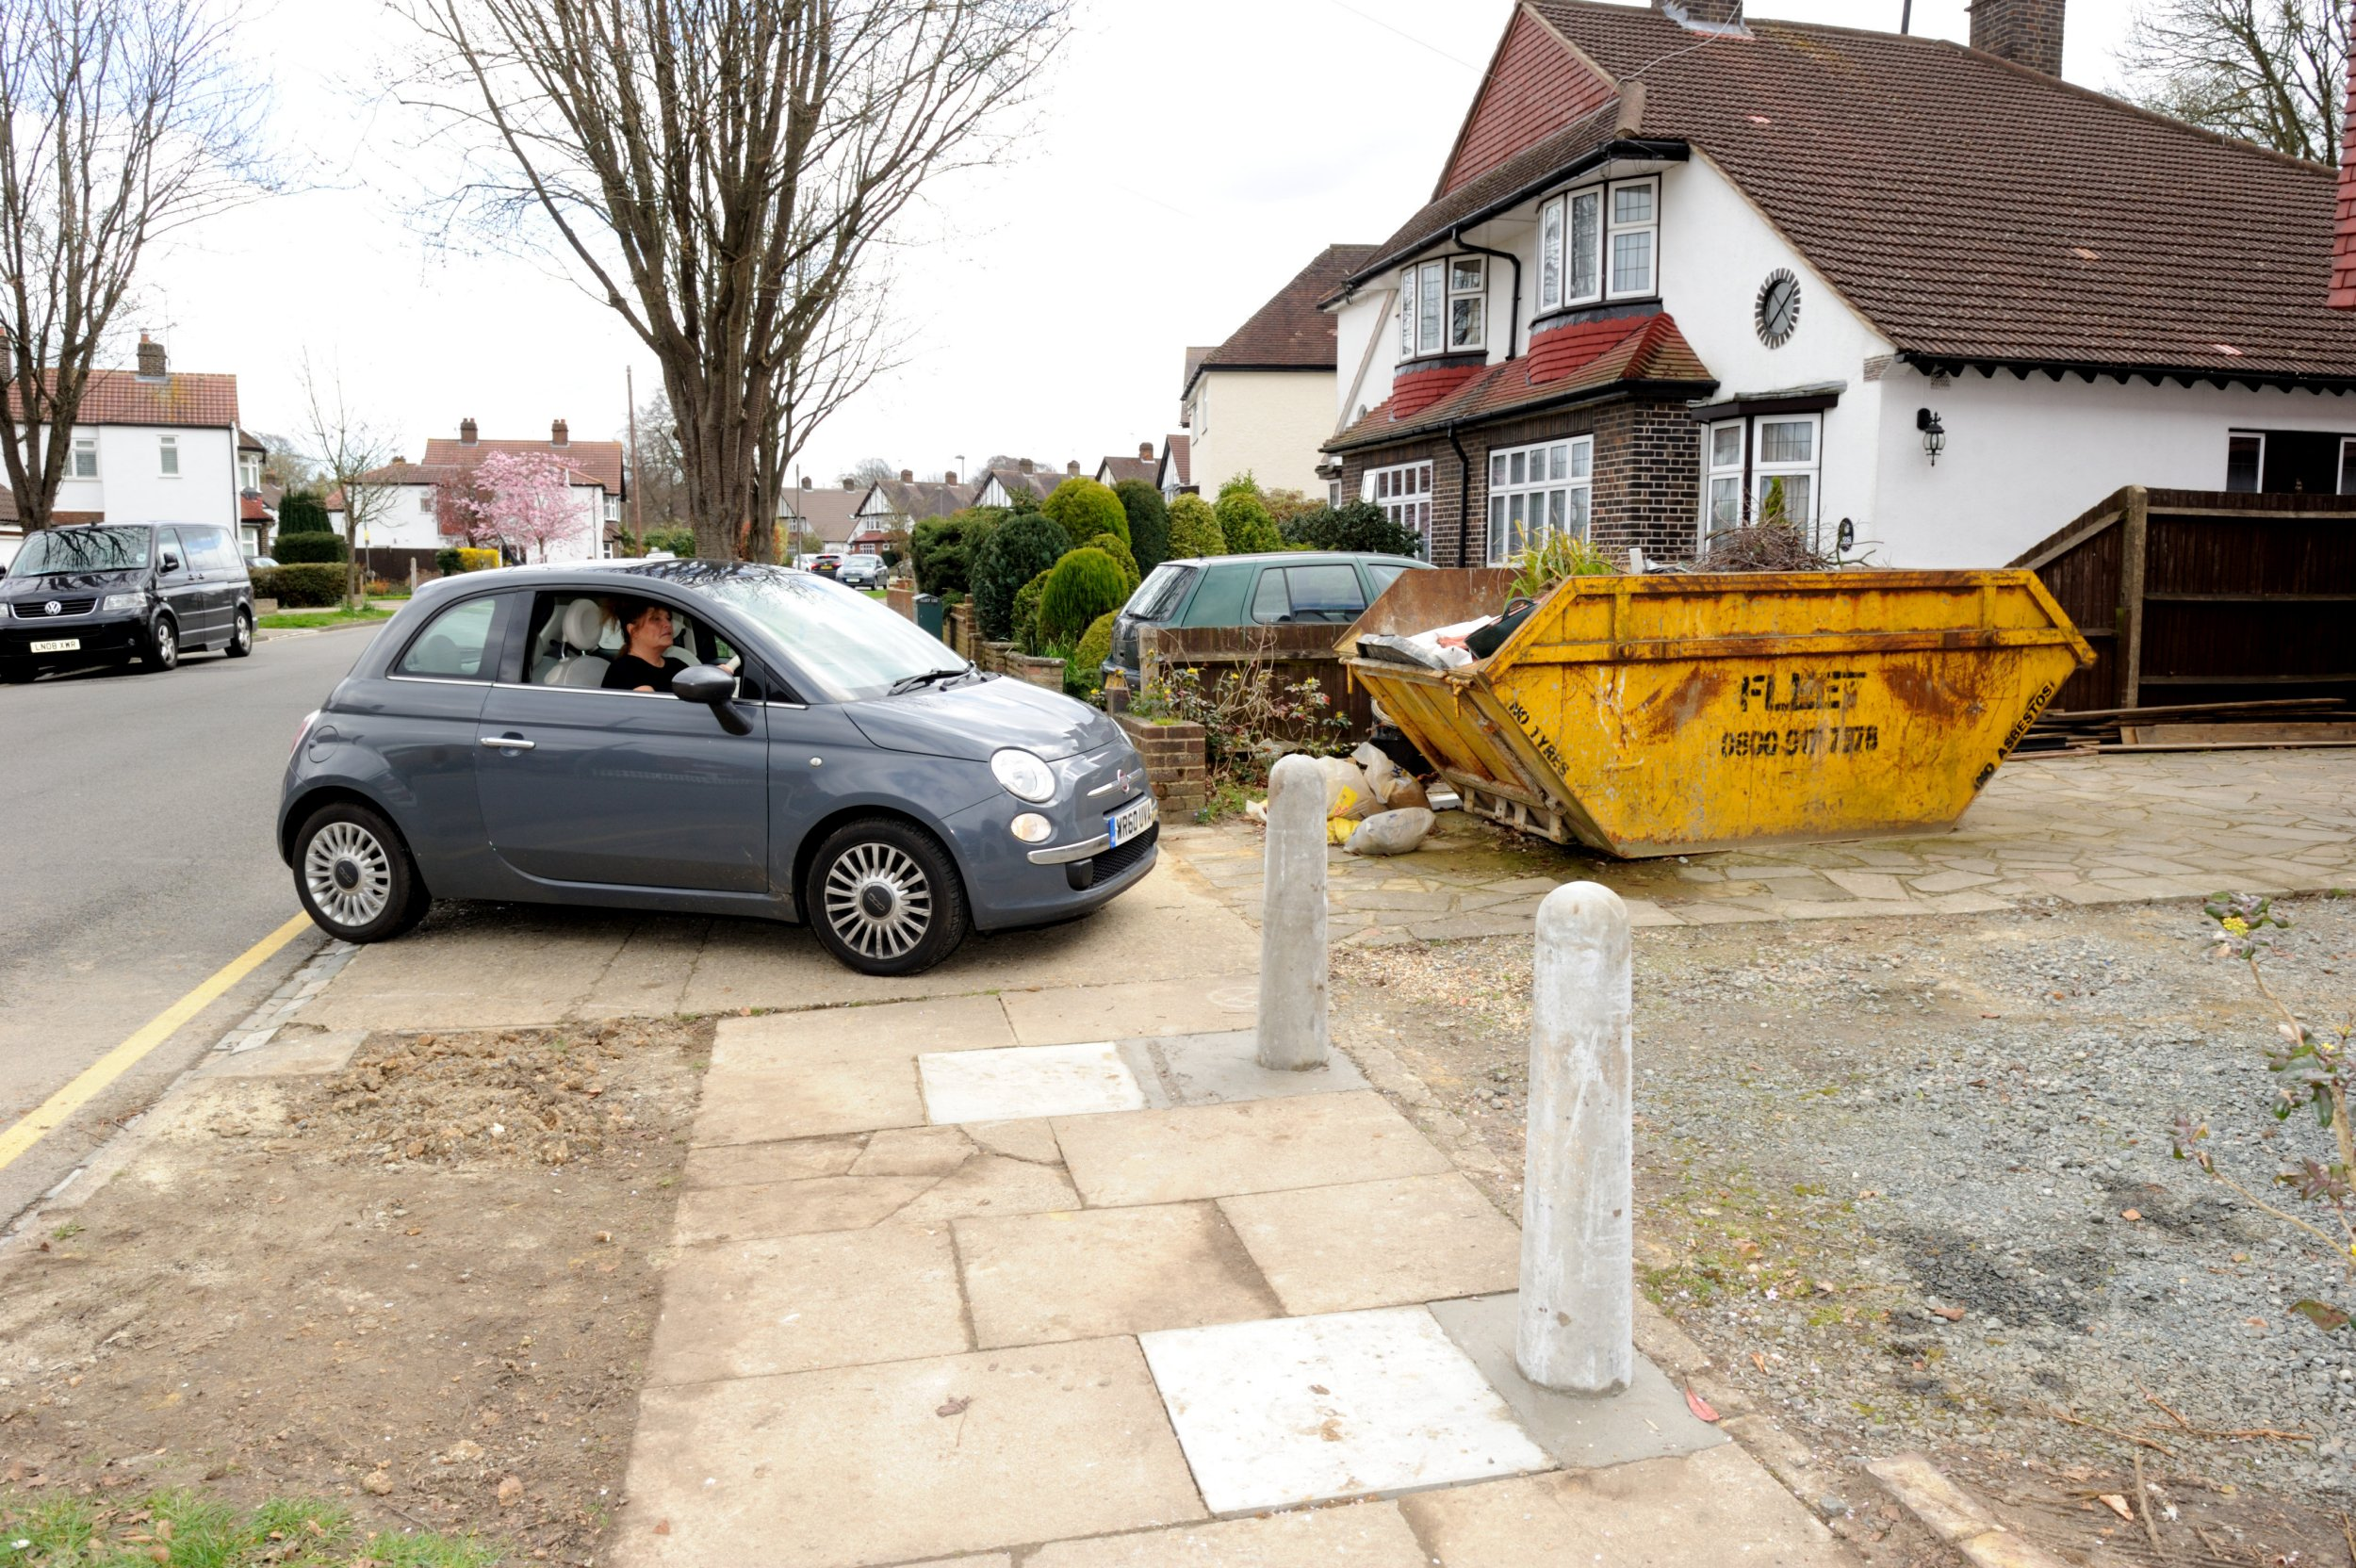 Council install concrete bollards to stop family from using own drive